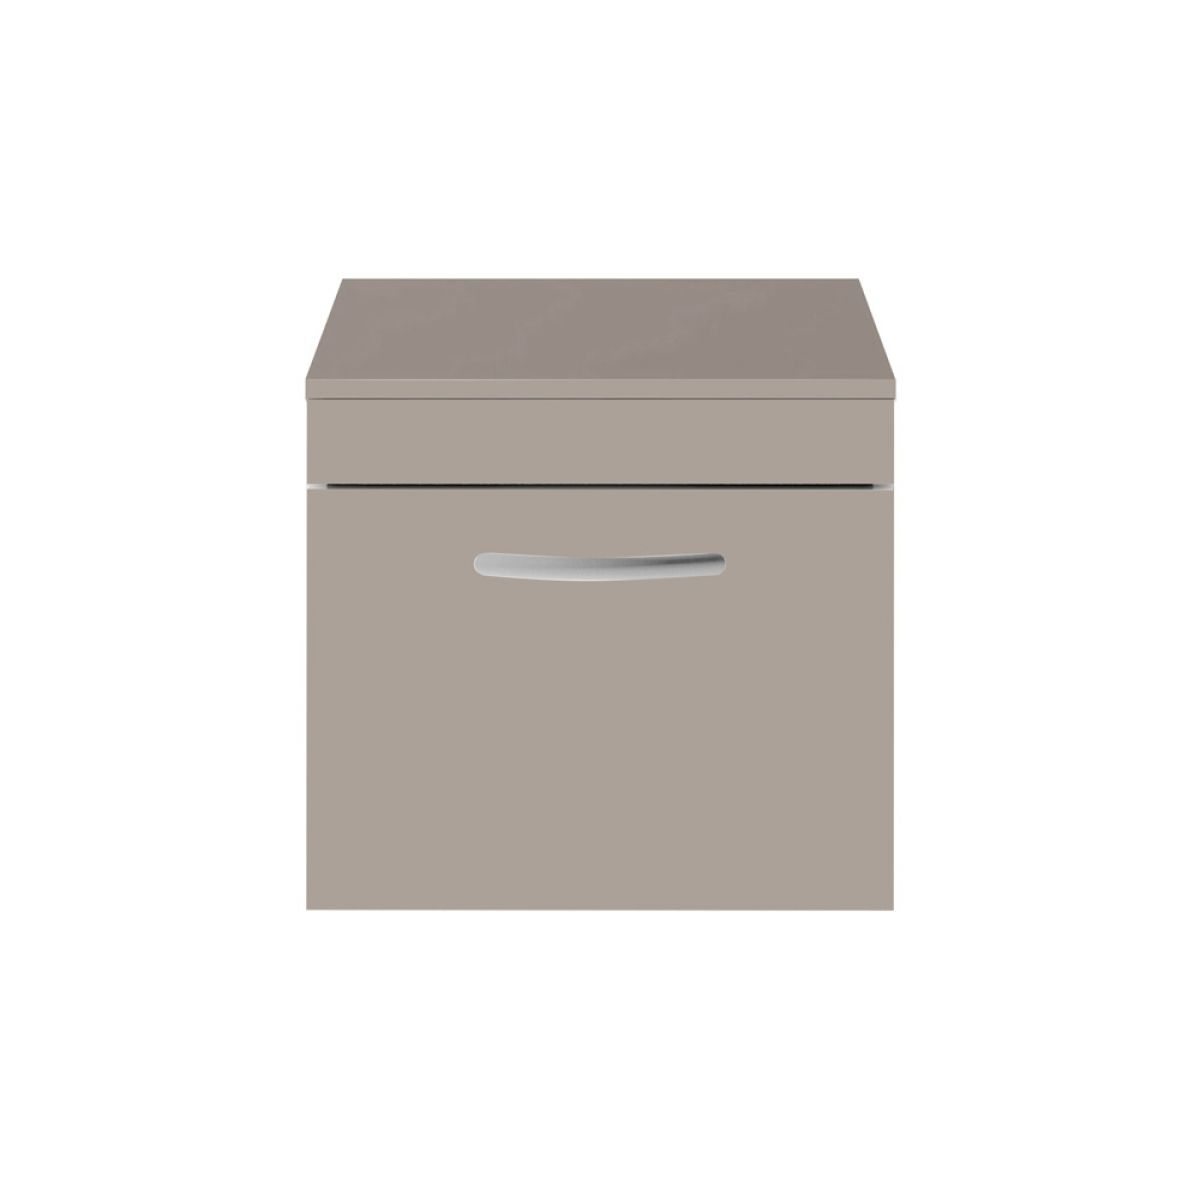 Premier Athena Stone Grey 1 Drawer Wall Hung Vanity Unit 500mm with Worktop